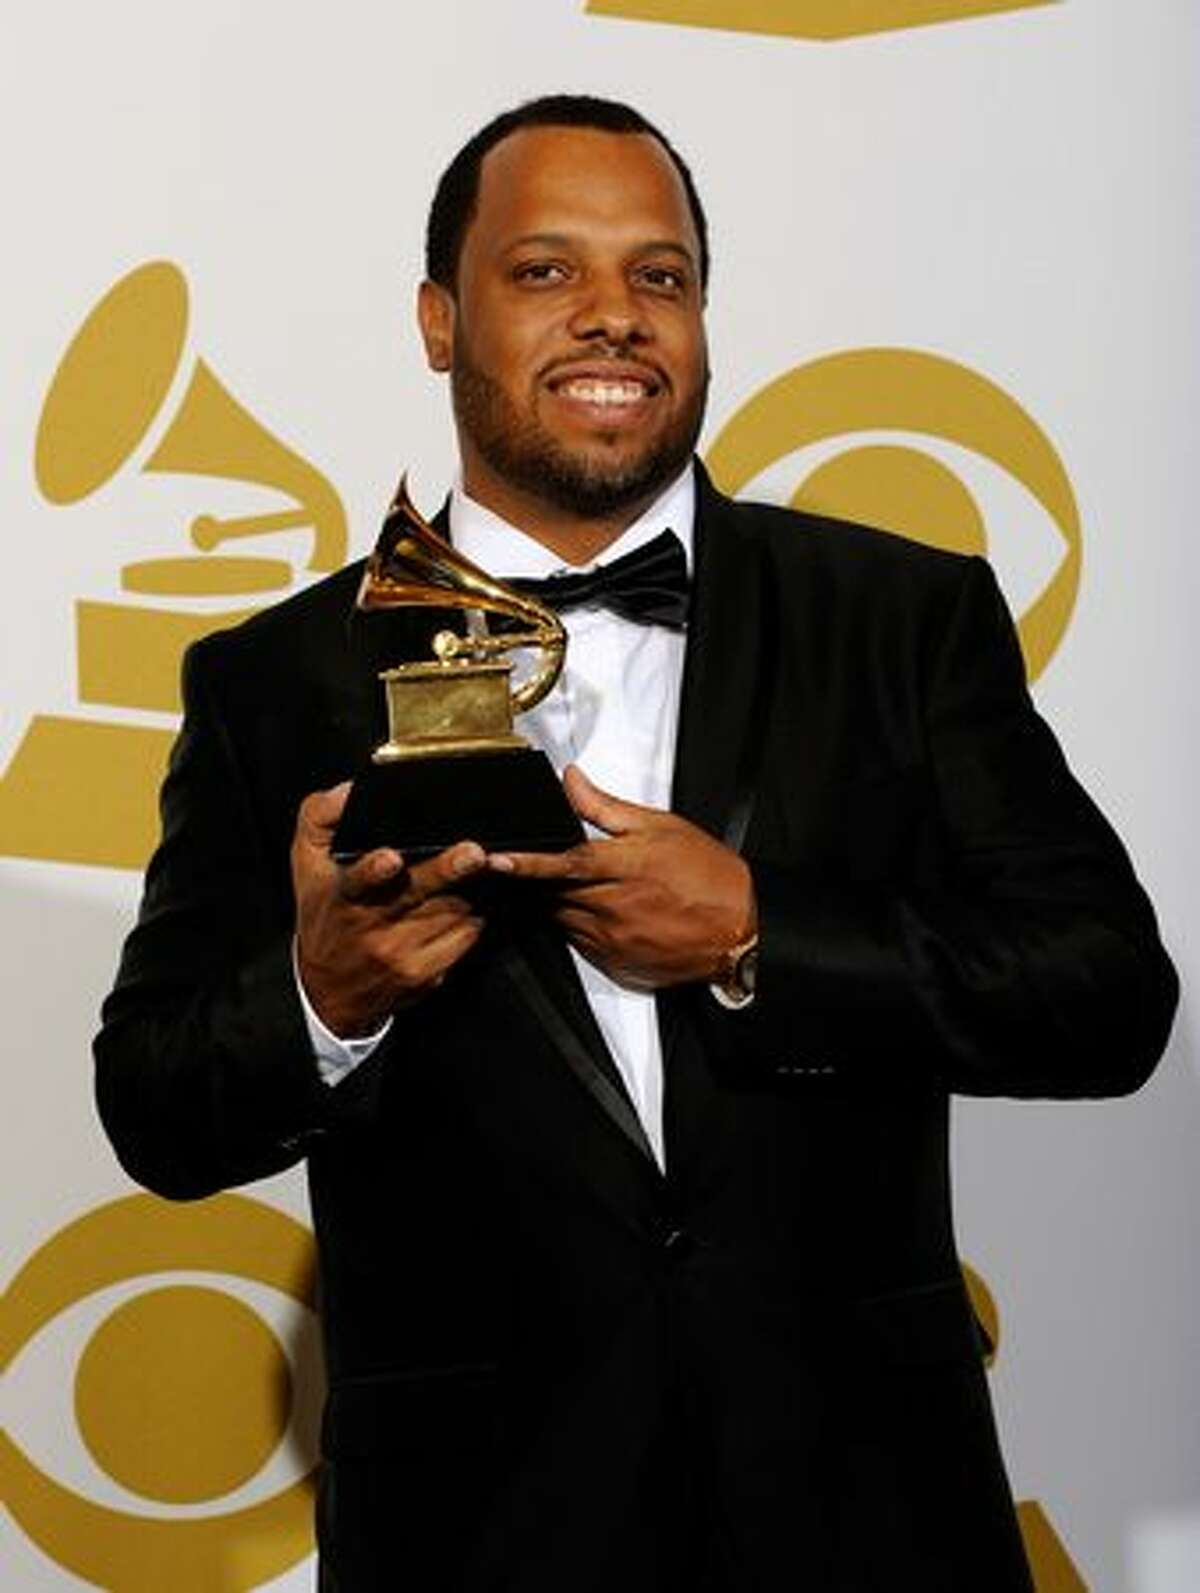 Songwriter Ernest Wilson poses with Best Rap Song award for 'Run This Town' in the press room.